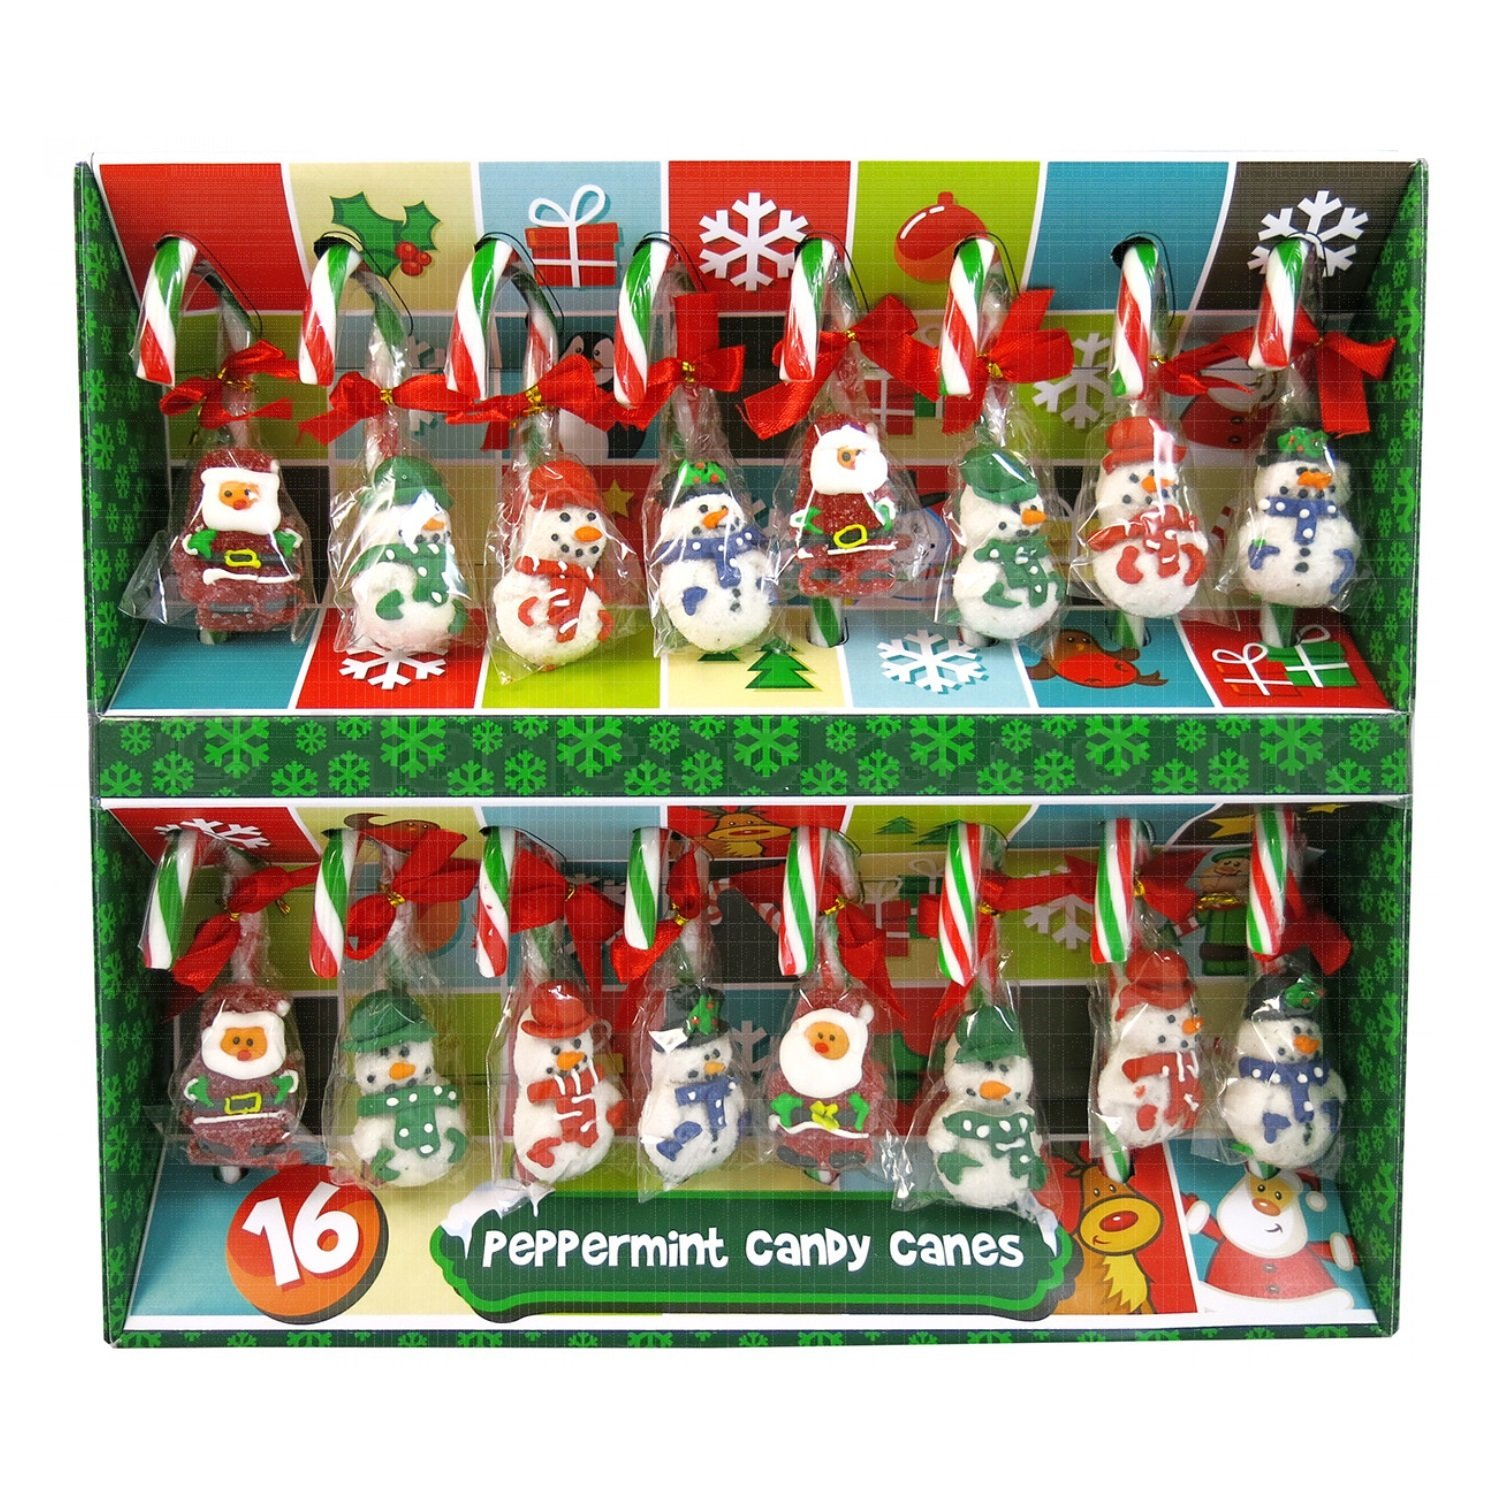 Candy Christmas Tree Decorations.16 Peppermint Candy Canes With Jelly Figures Christmas Tree Decorations 352g